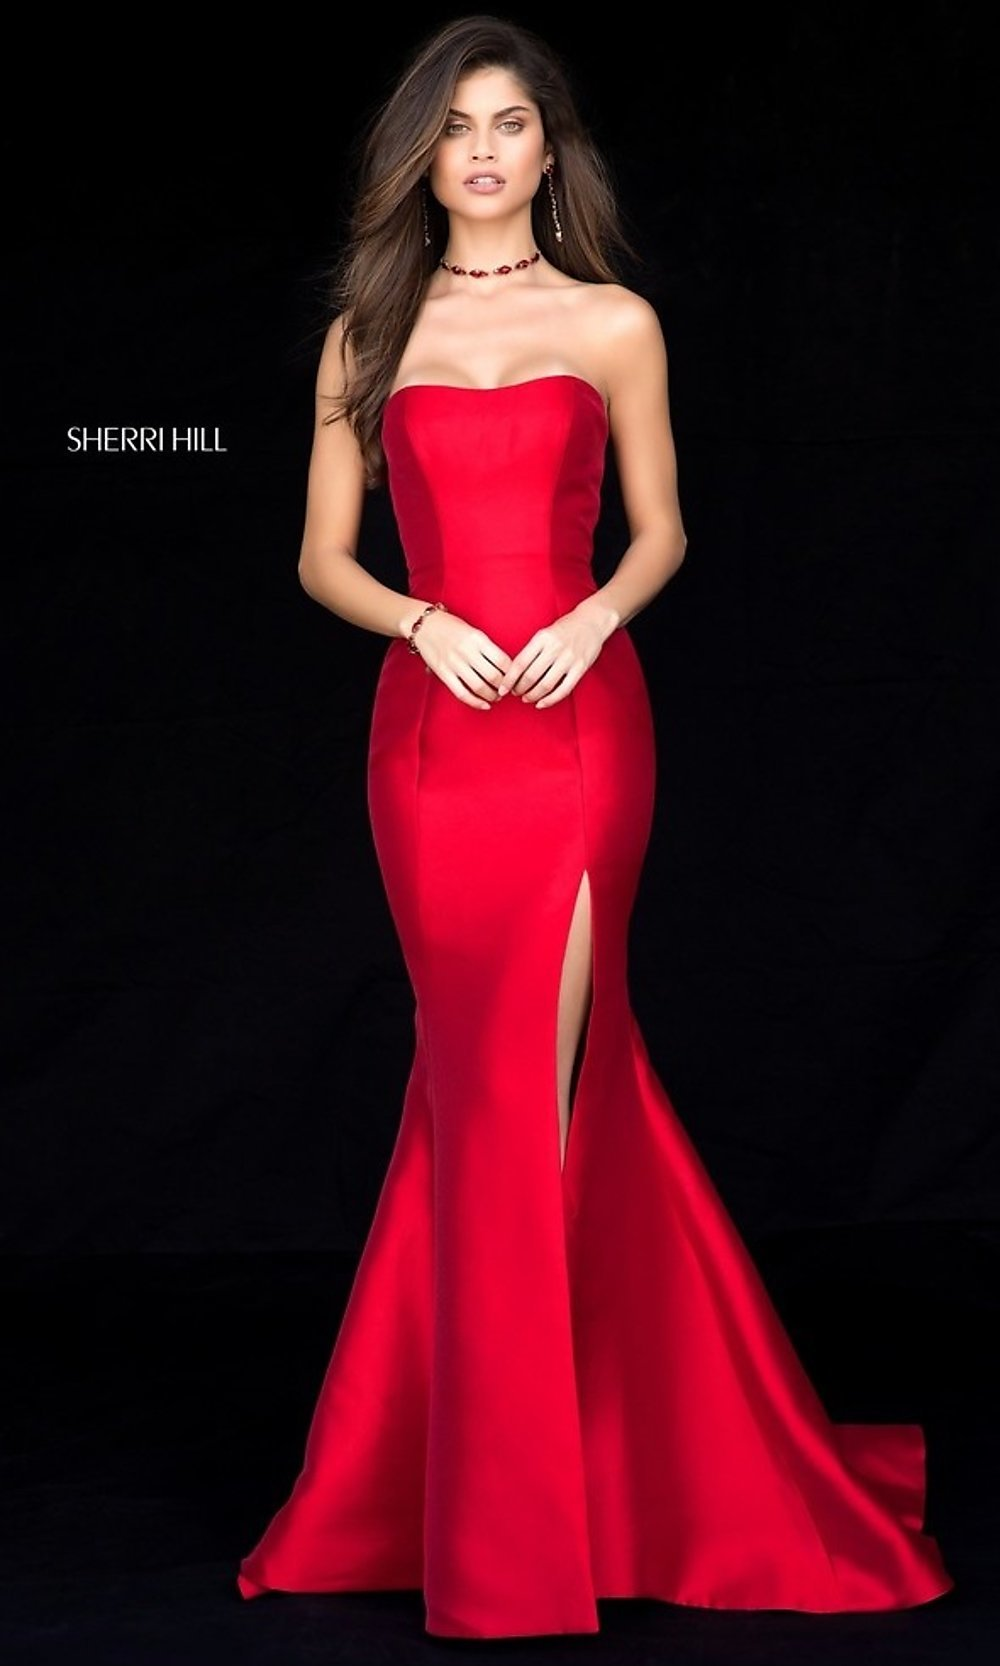 Long Sherri Hill Strapless Prom Dress - PromGirl